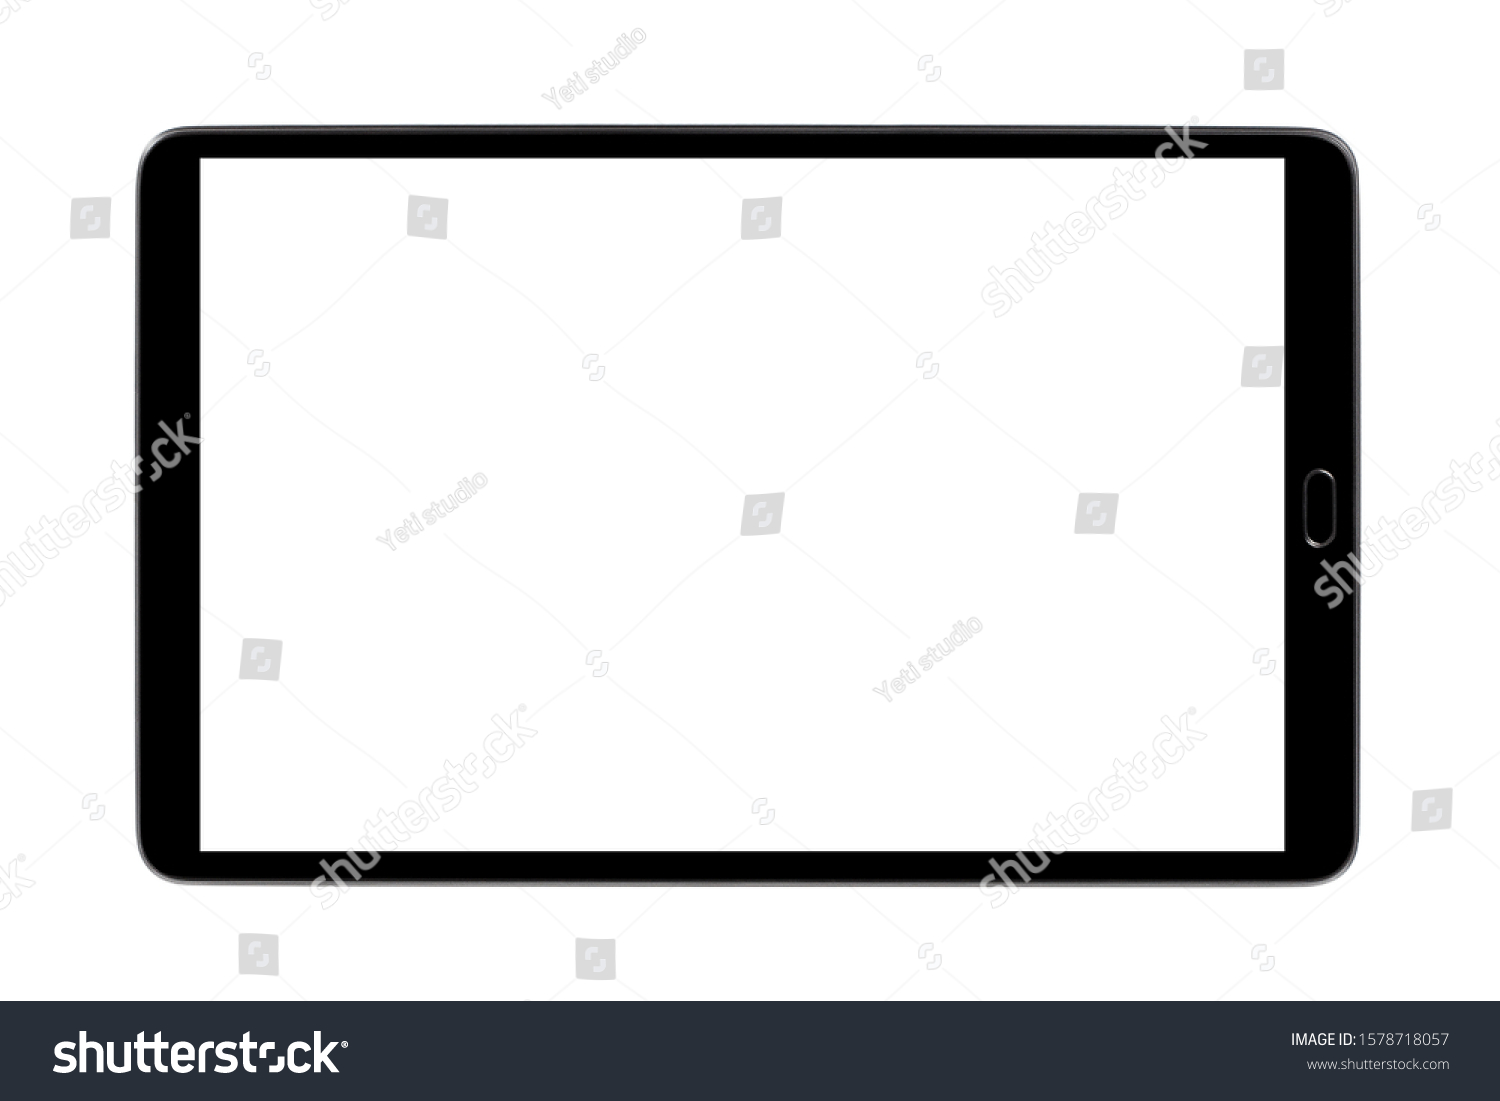 Black tablet, isolated on white background #1578718057